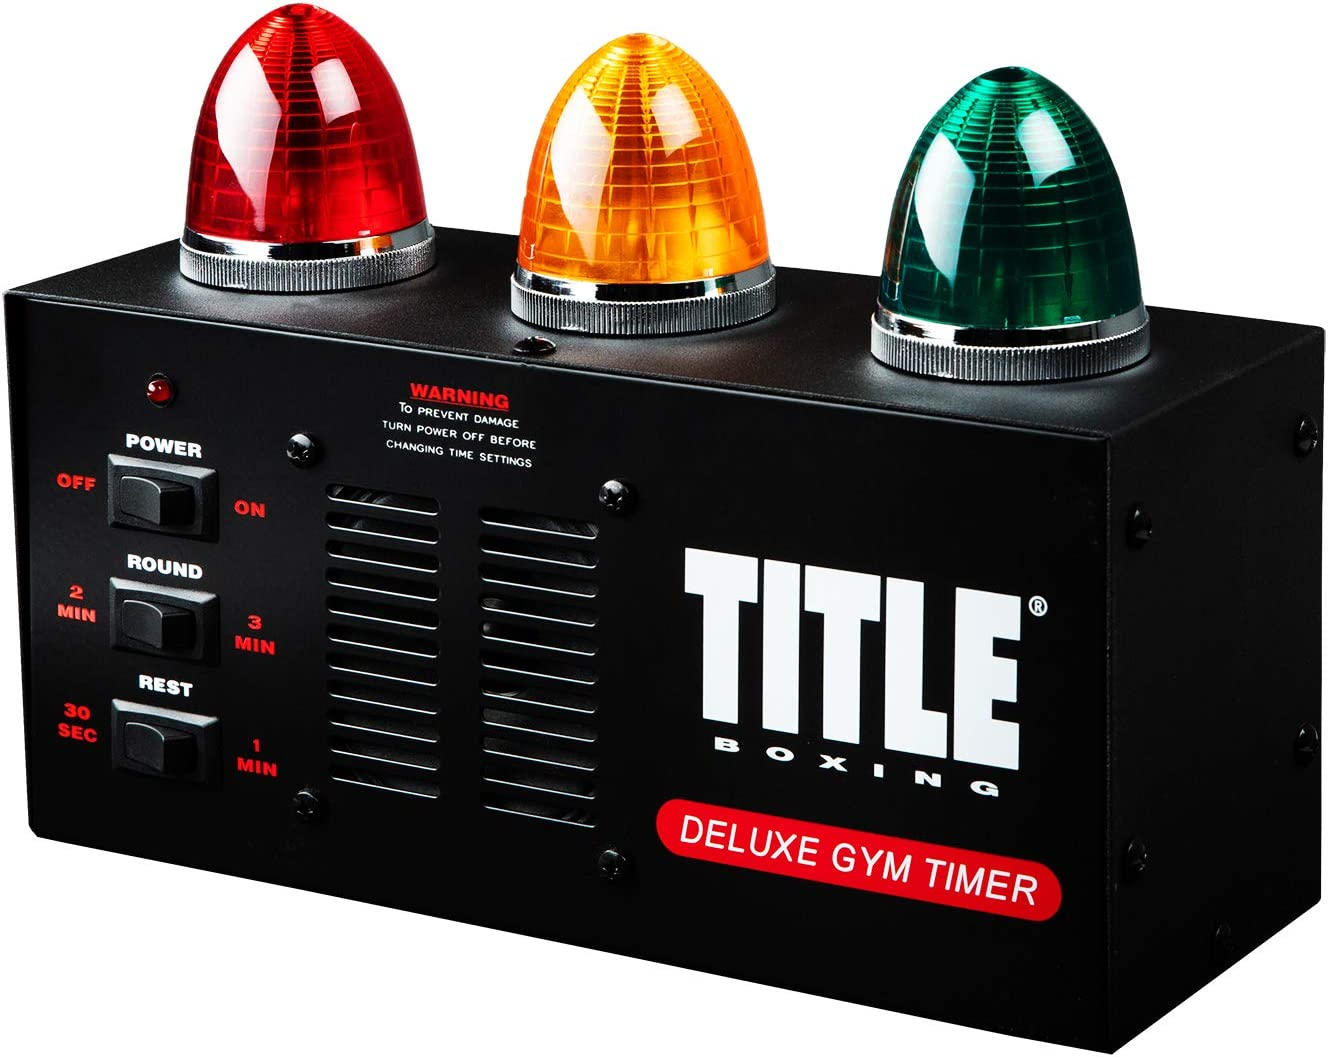 TITLE Boxing Deluxe Gym Timer : Boxing Ring Parts And Accessories : Sports & Outdoors